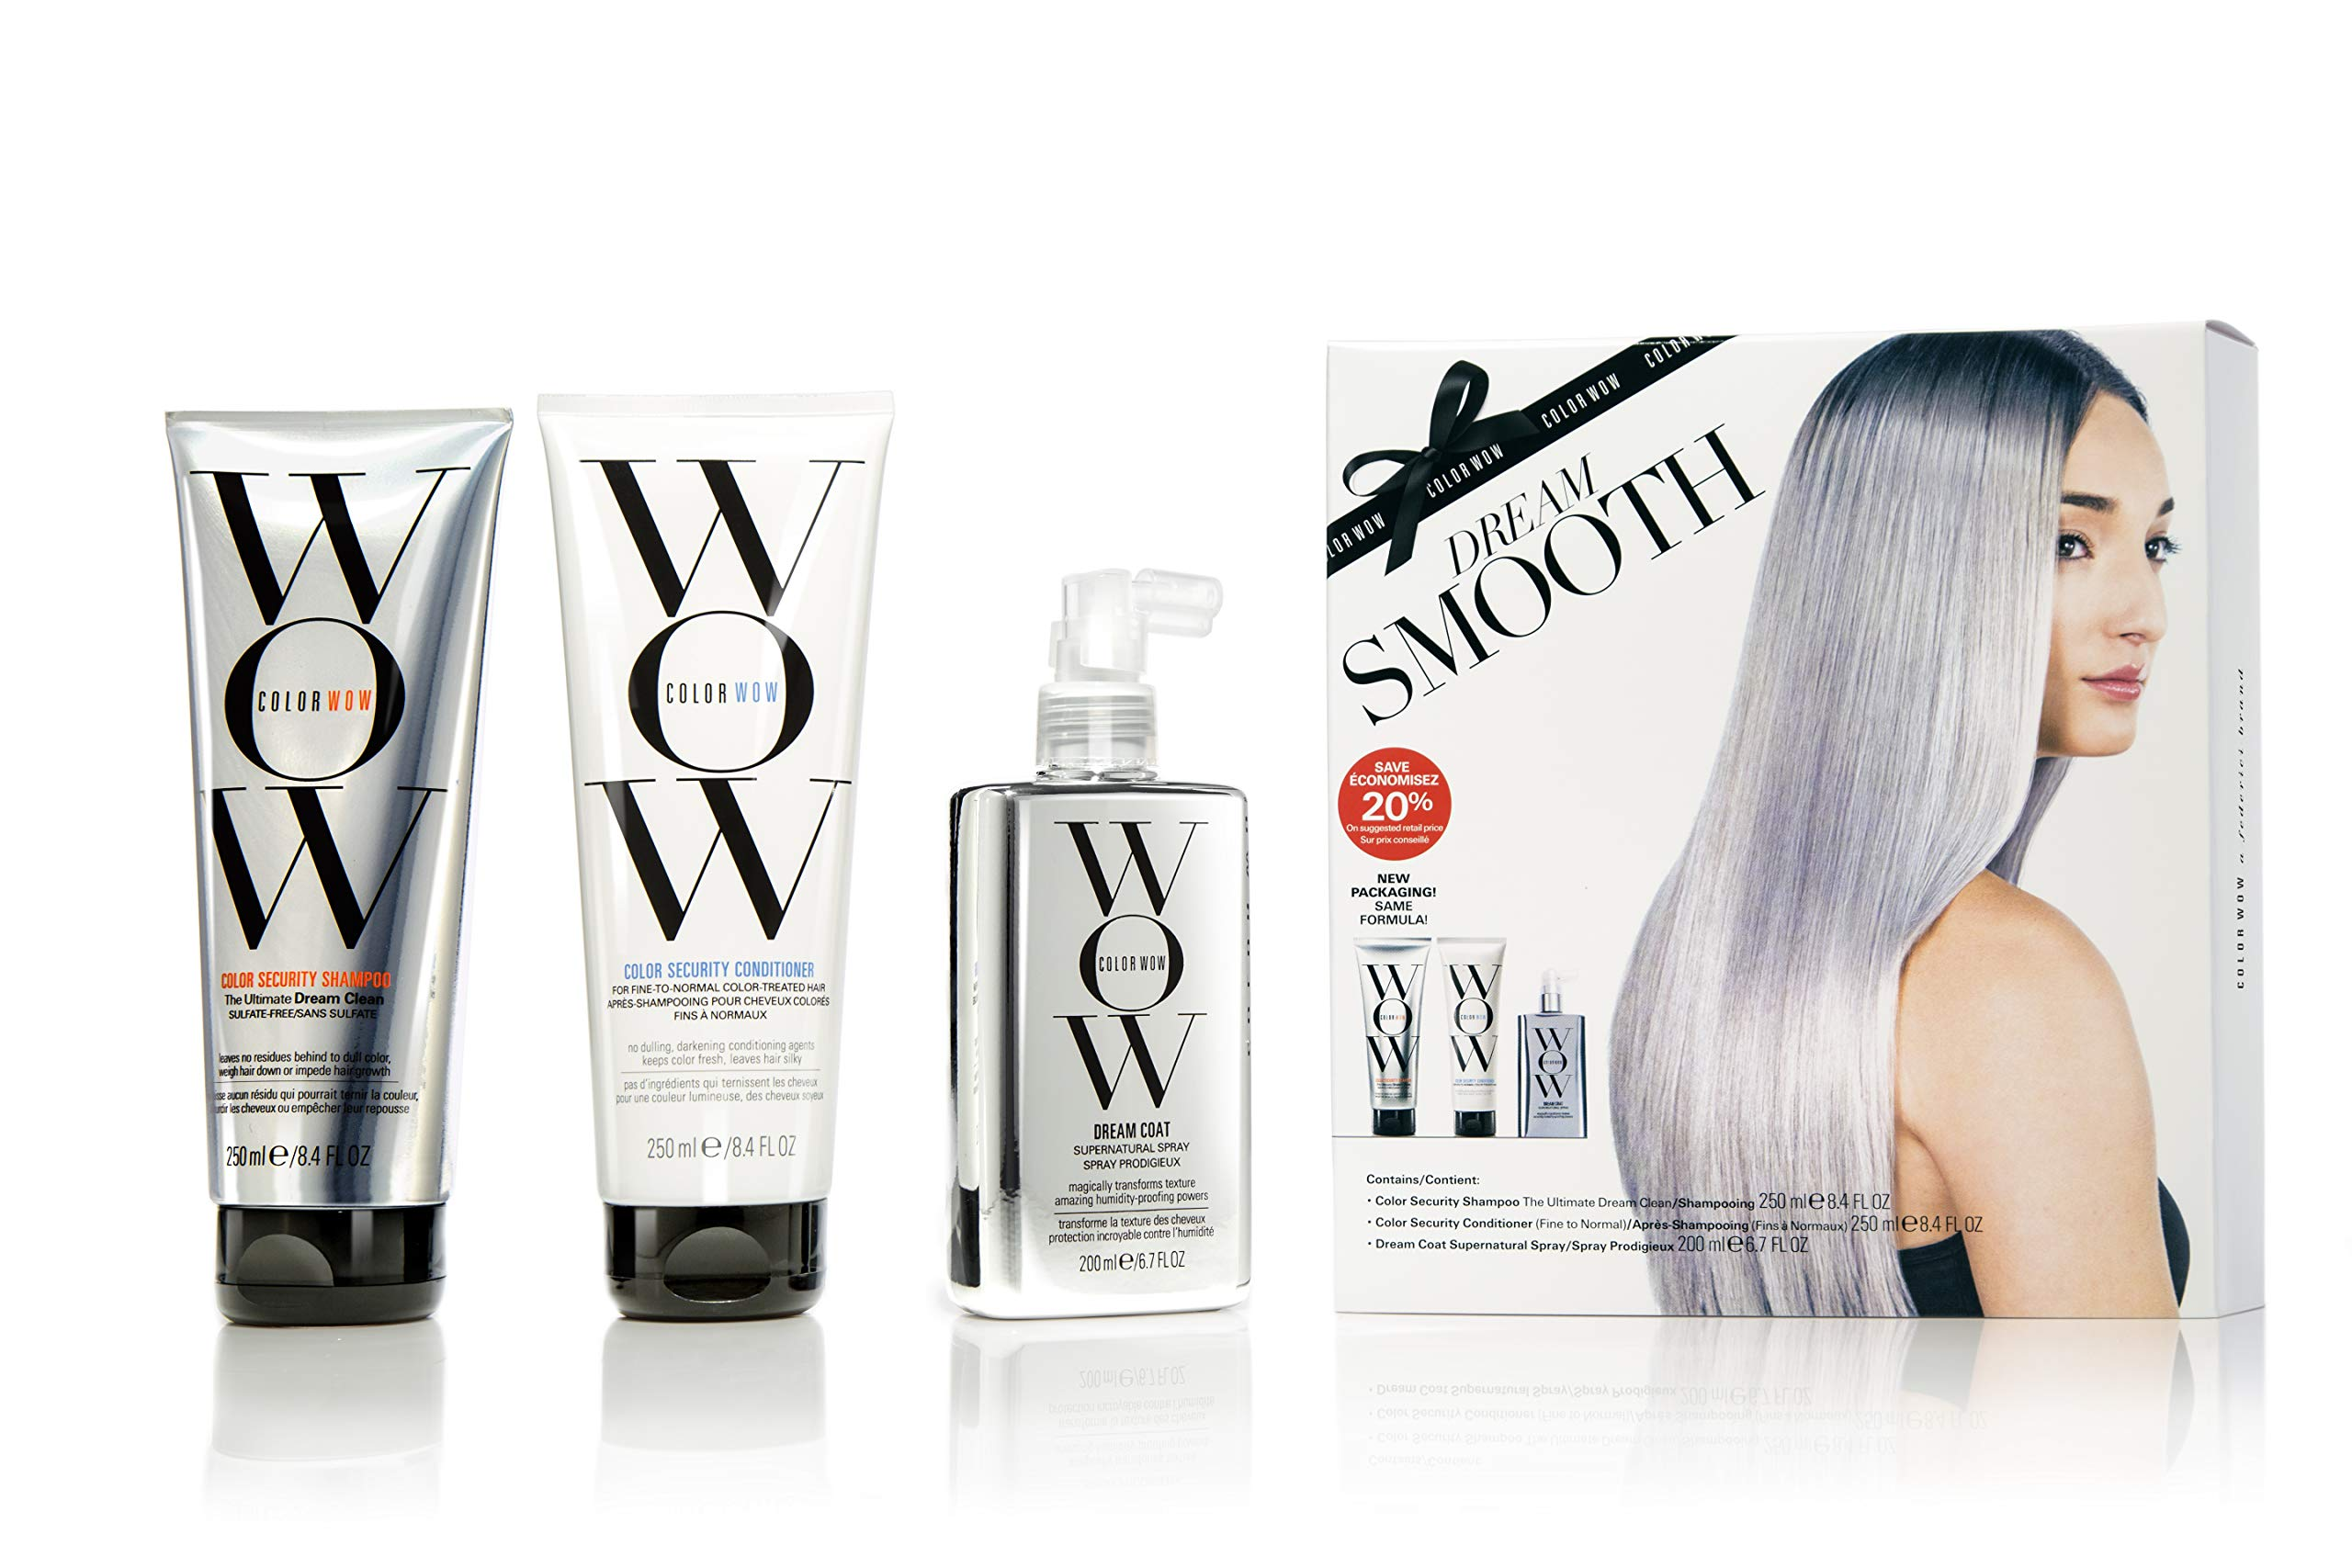 COLOR WOW Dream Smooth Kit